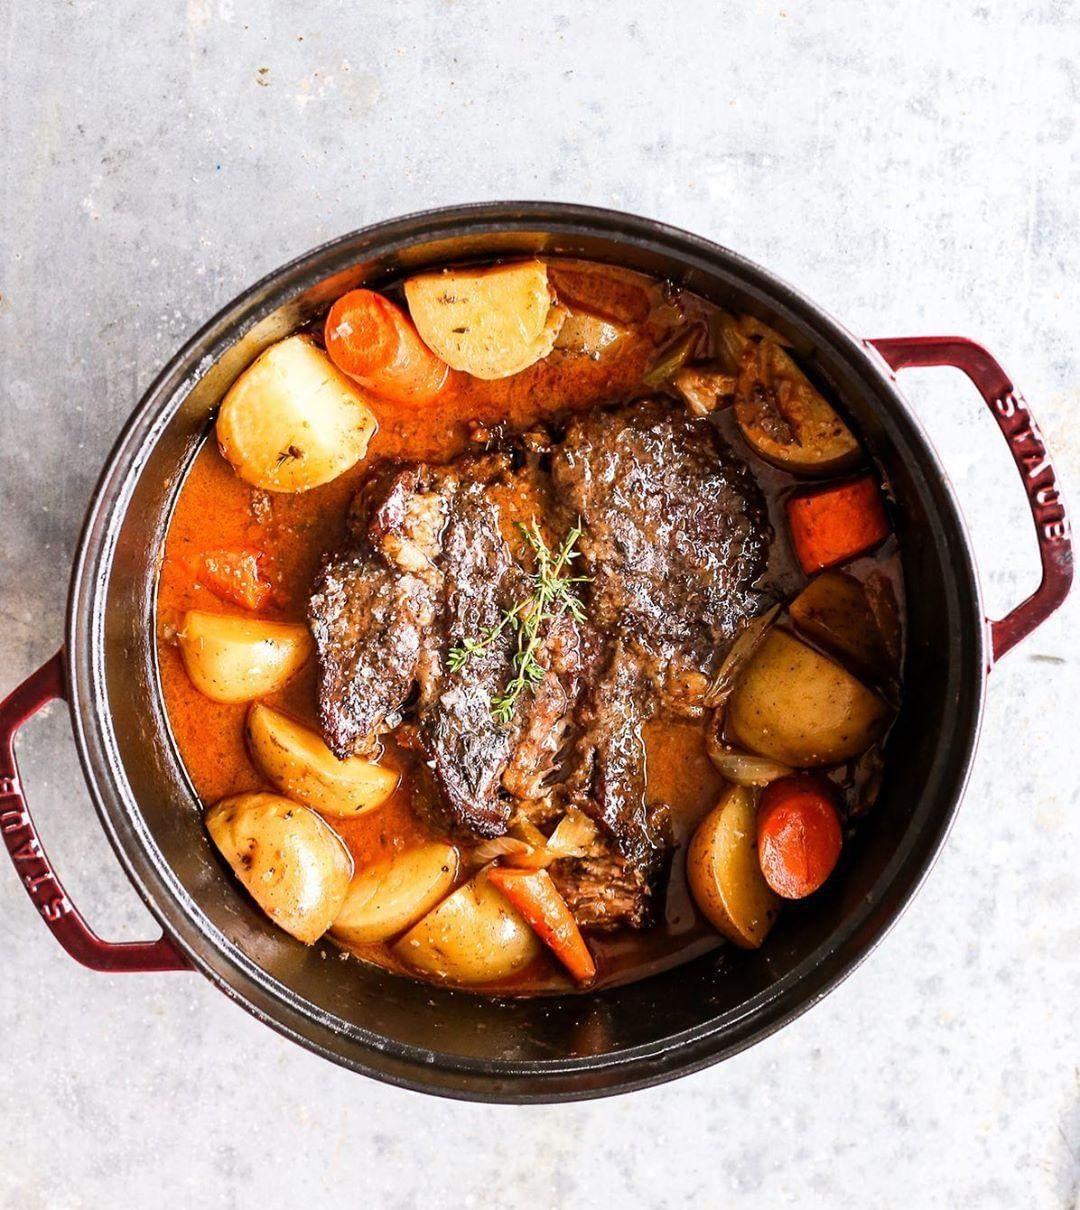 thedefineddishs hearty Dutch oven pot roast is keeping our Monday blues at bay What are you cooking in cast iron this week